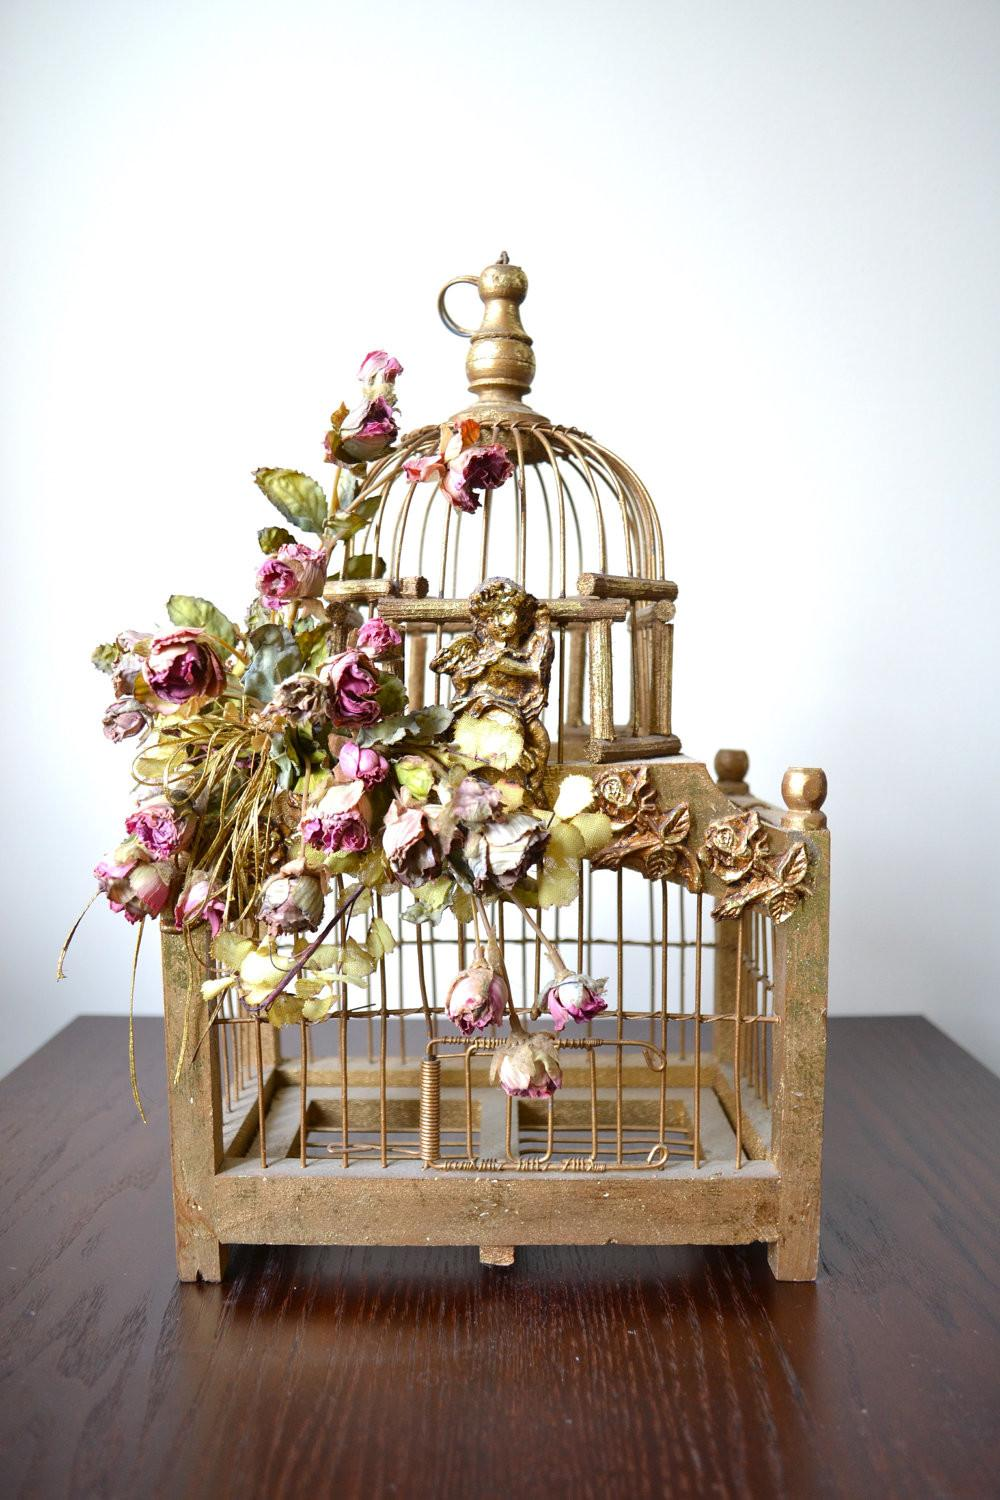 Architectural Metal Bird Cage Decorative Wooden